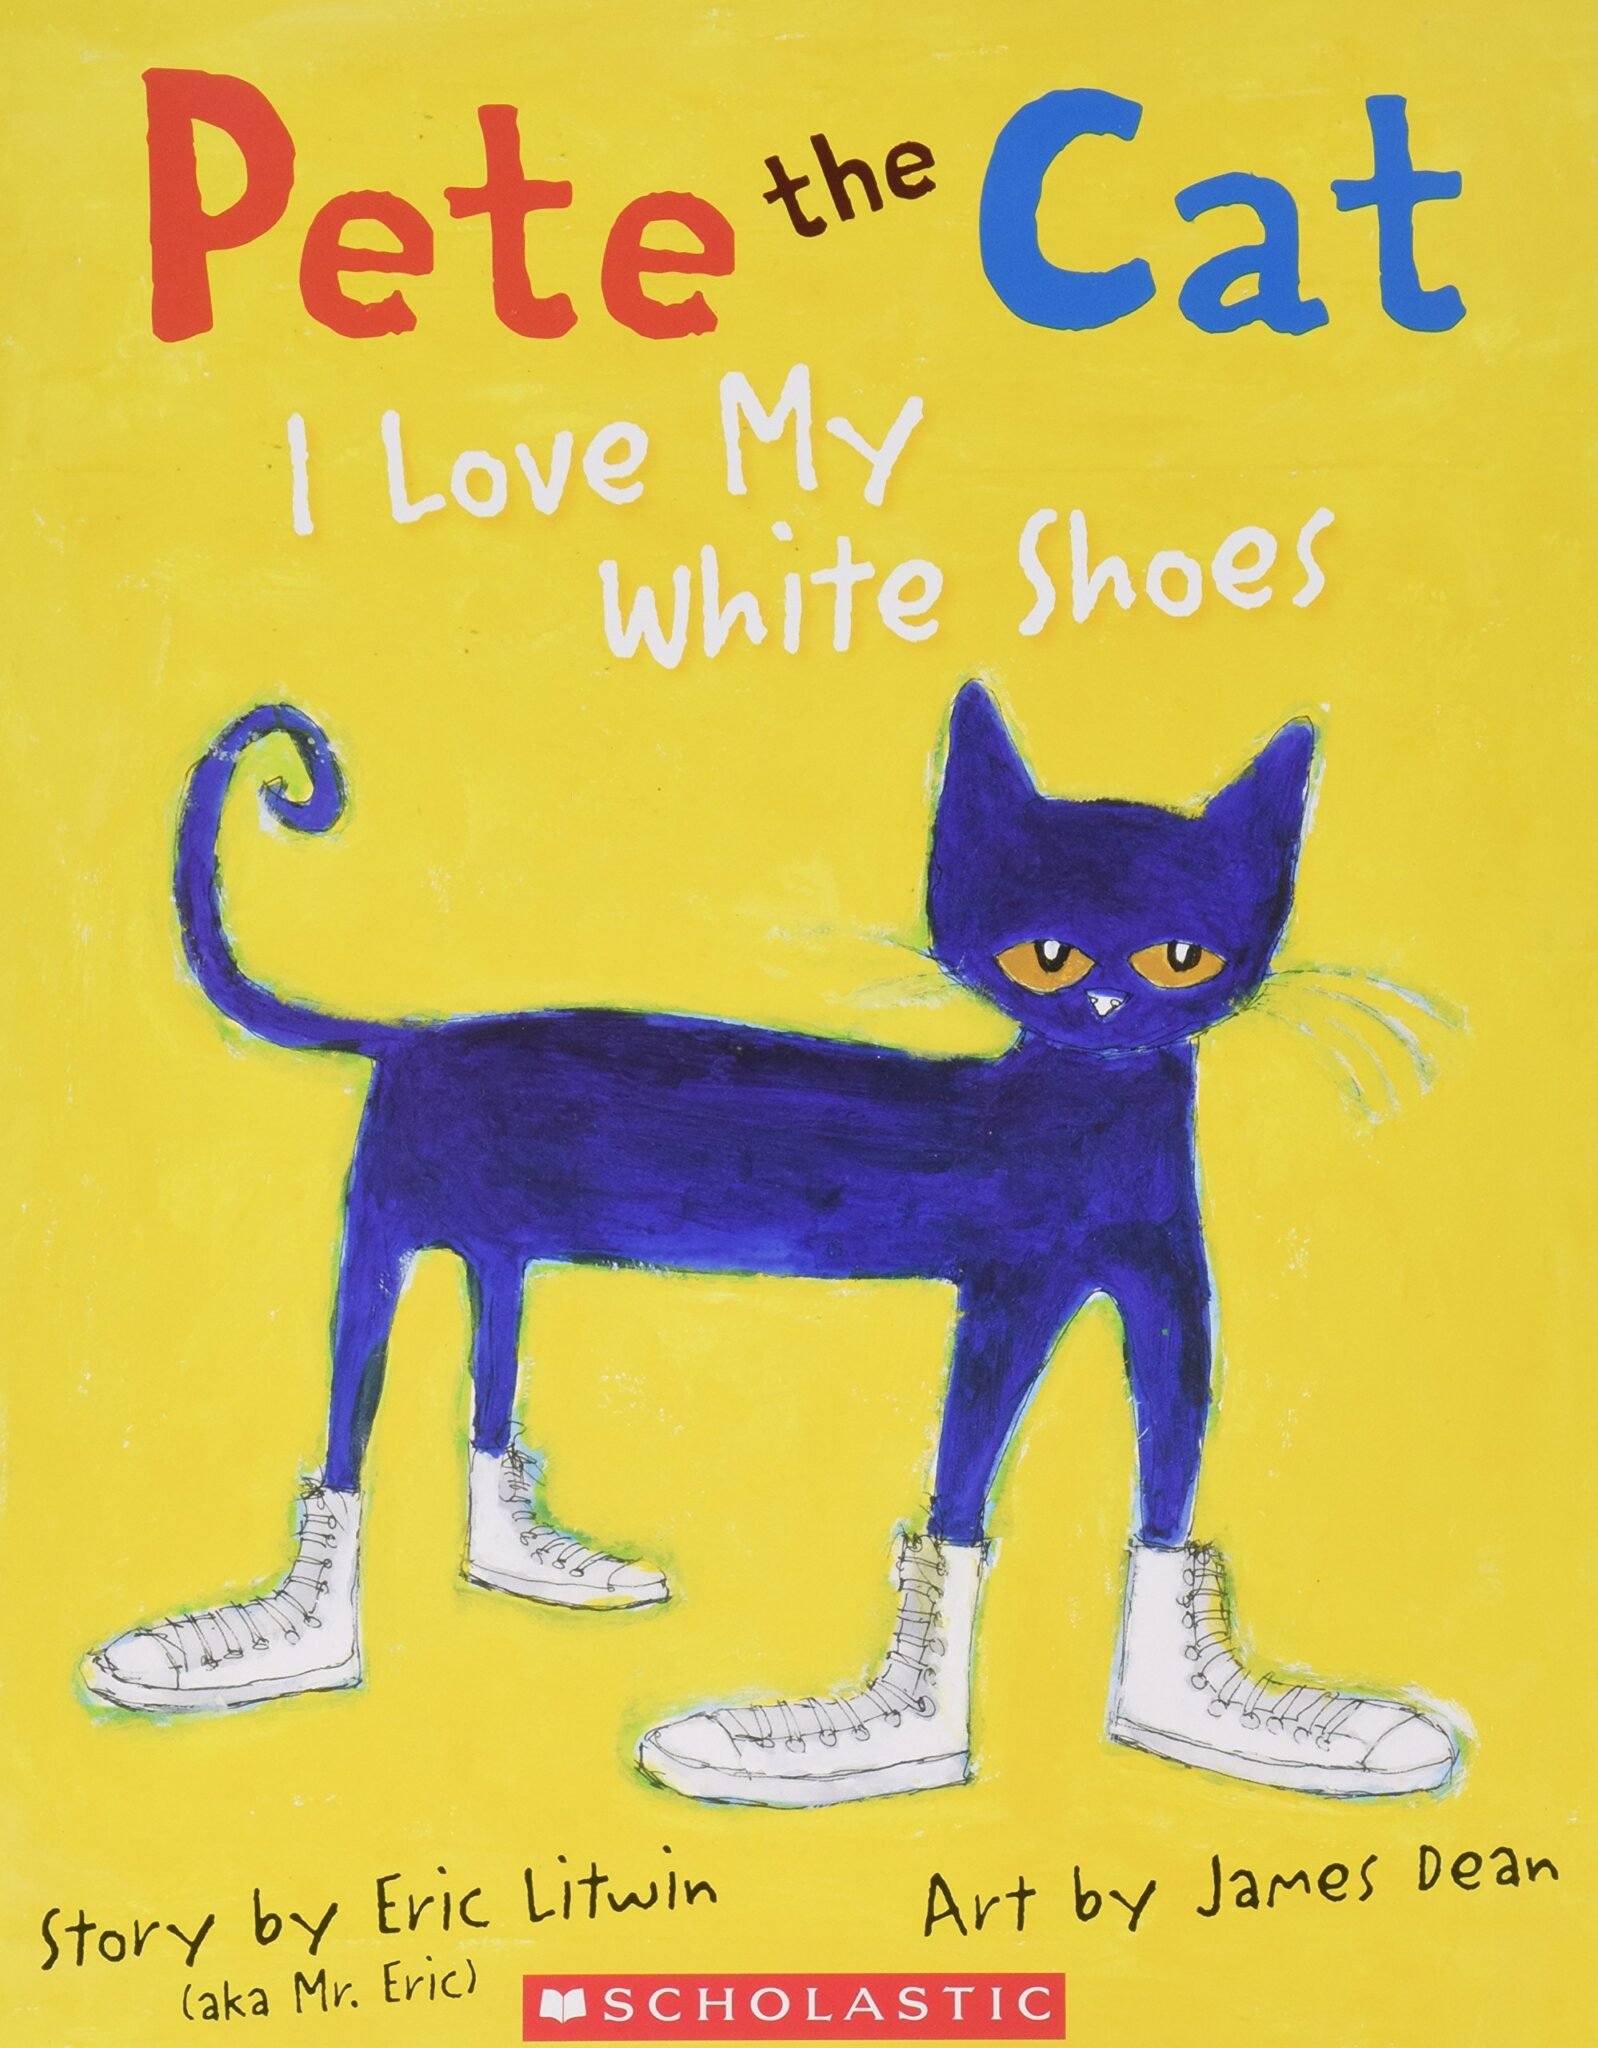 Pete the Cat Books 1